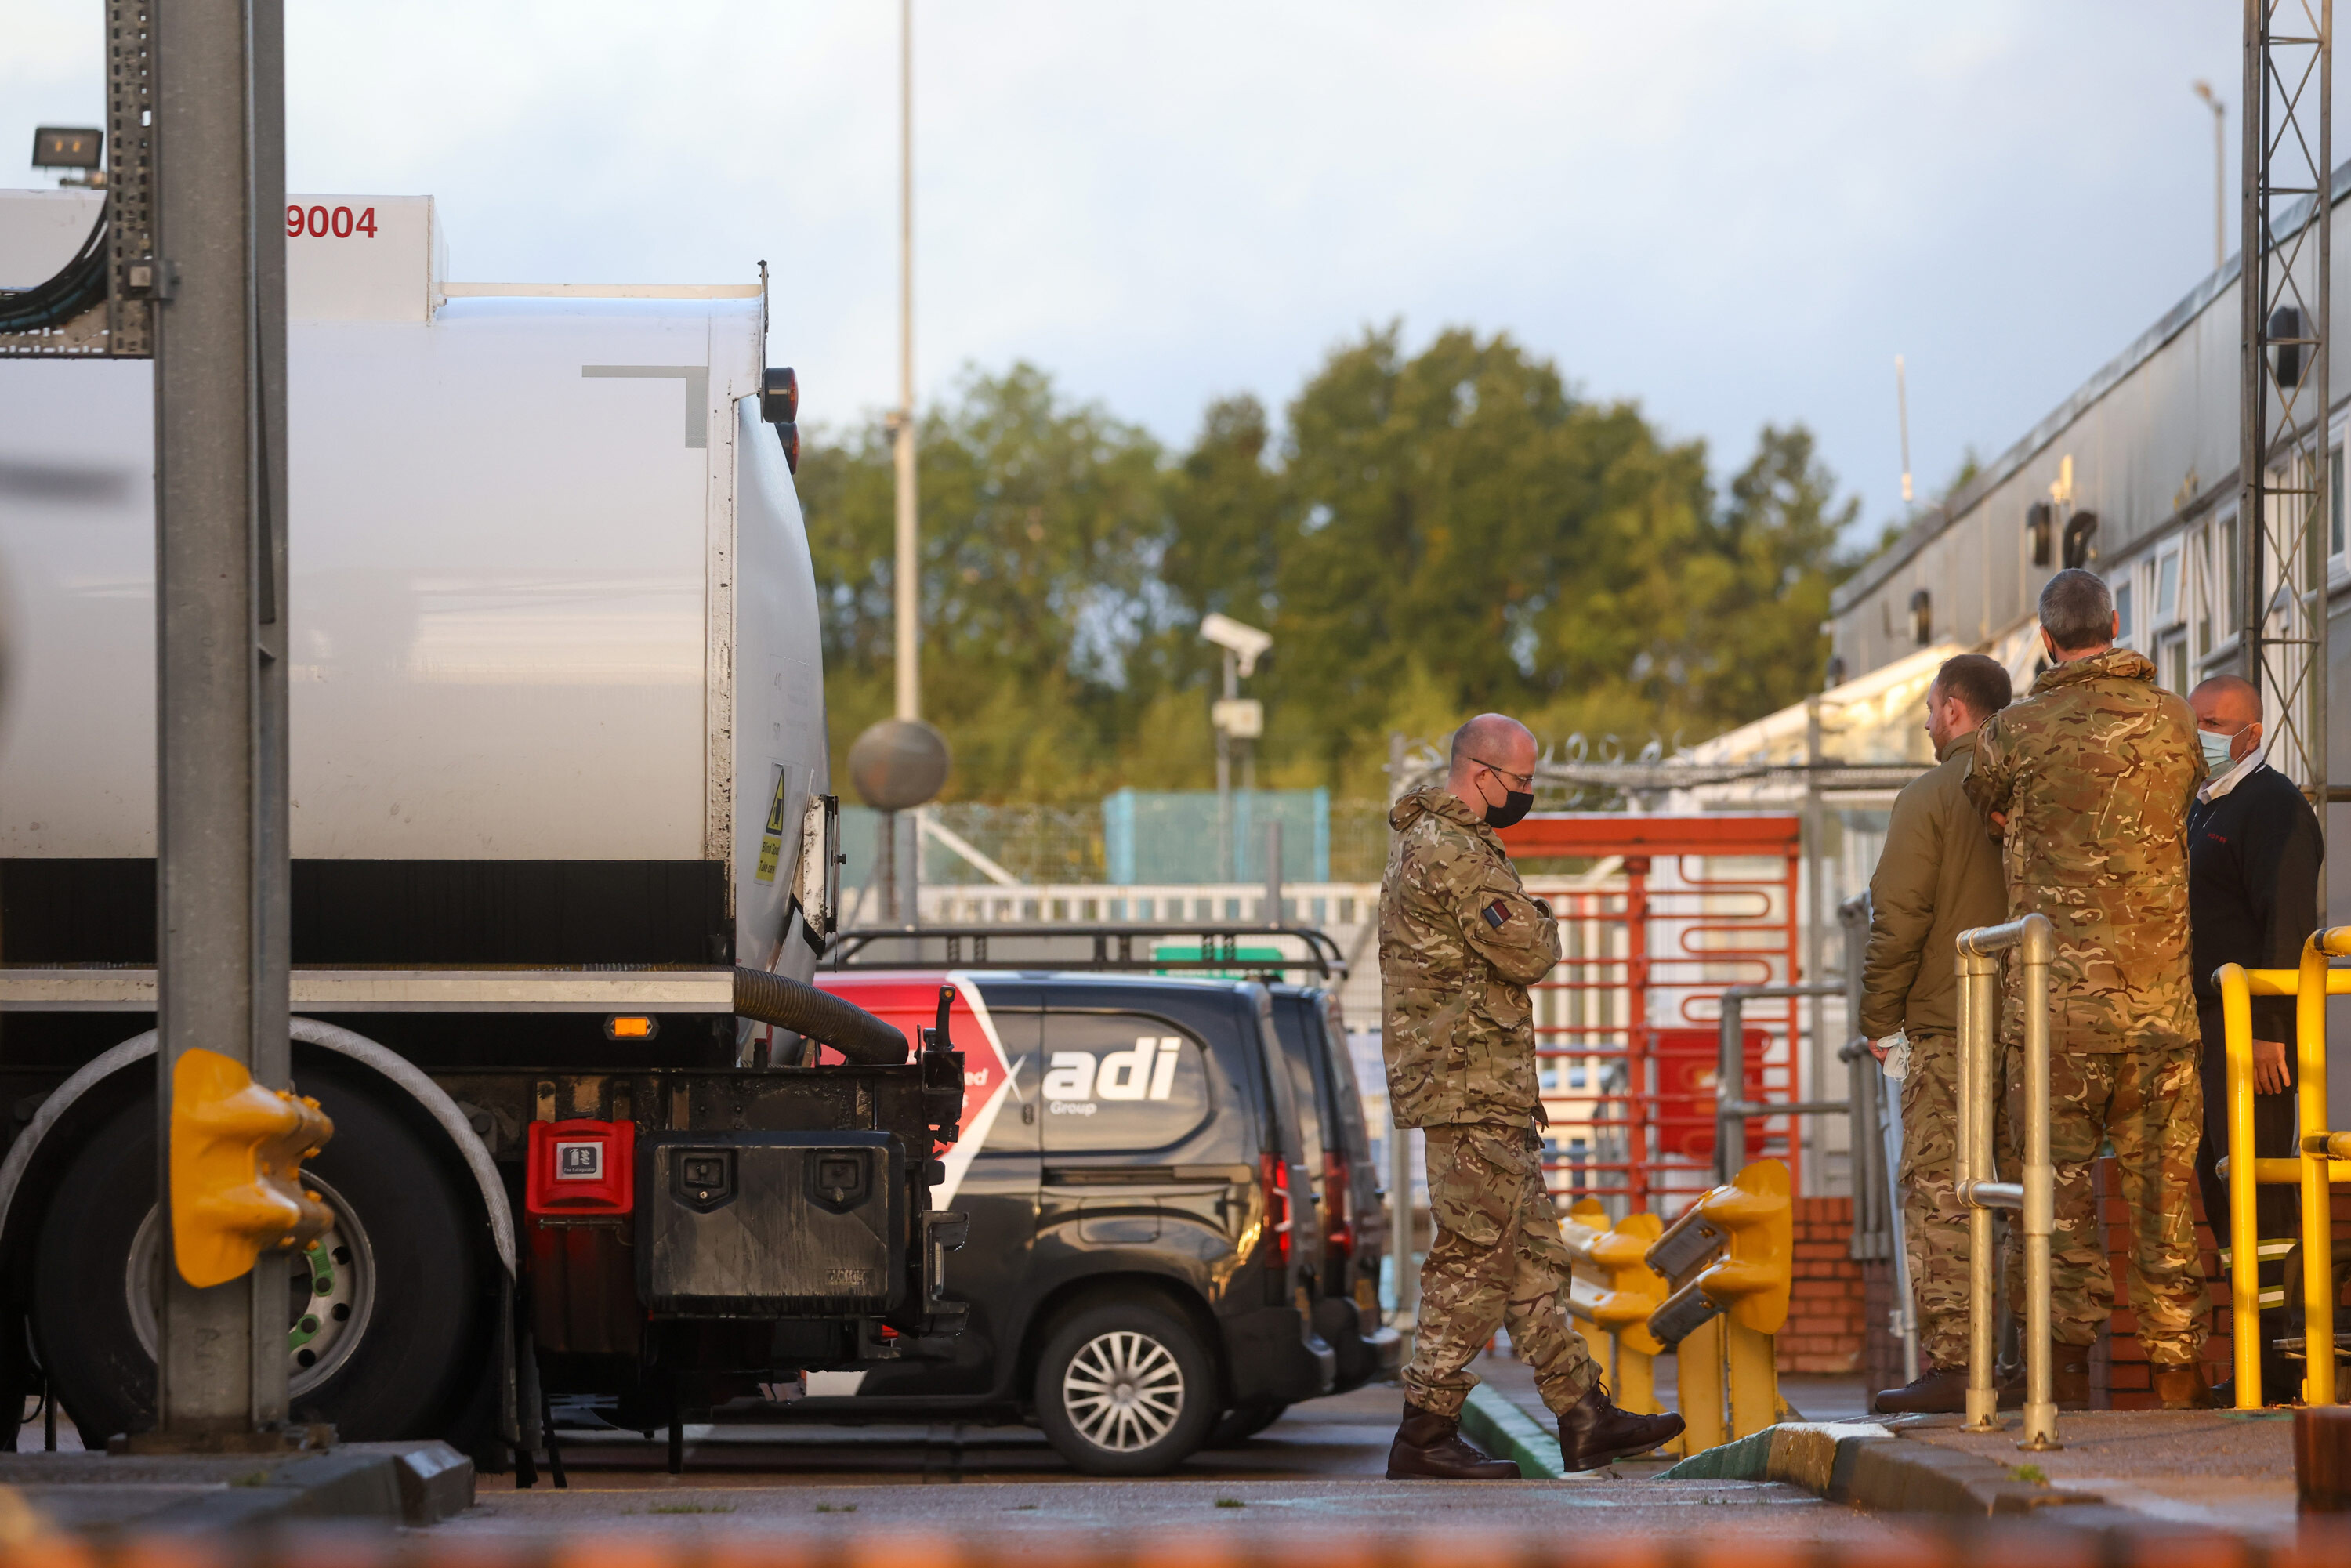 Soldiers are delivering fuel in Britain as 'challenging' shortages persist